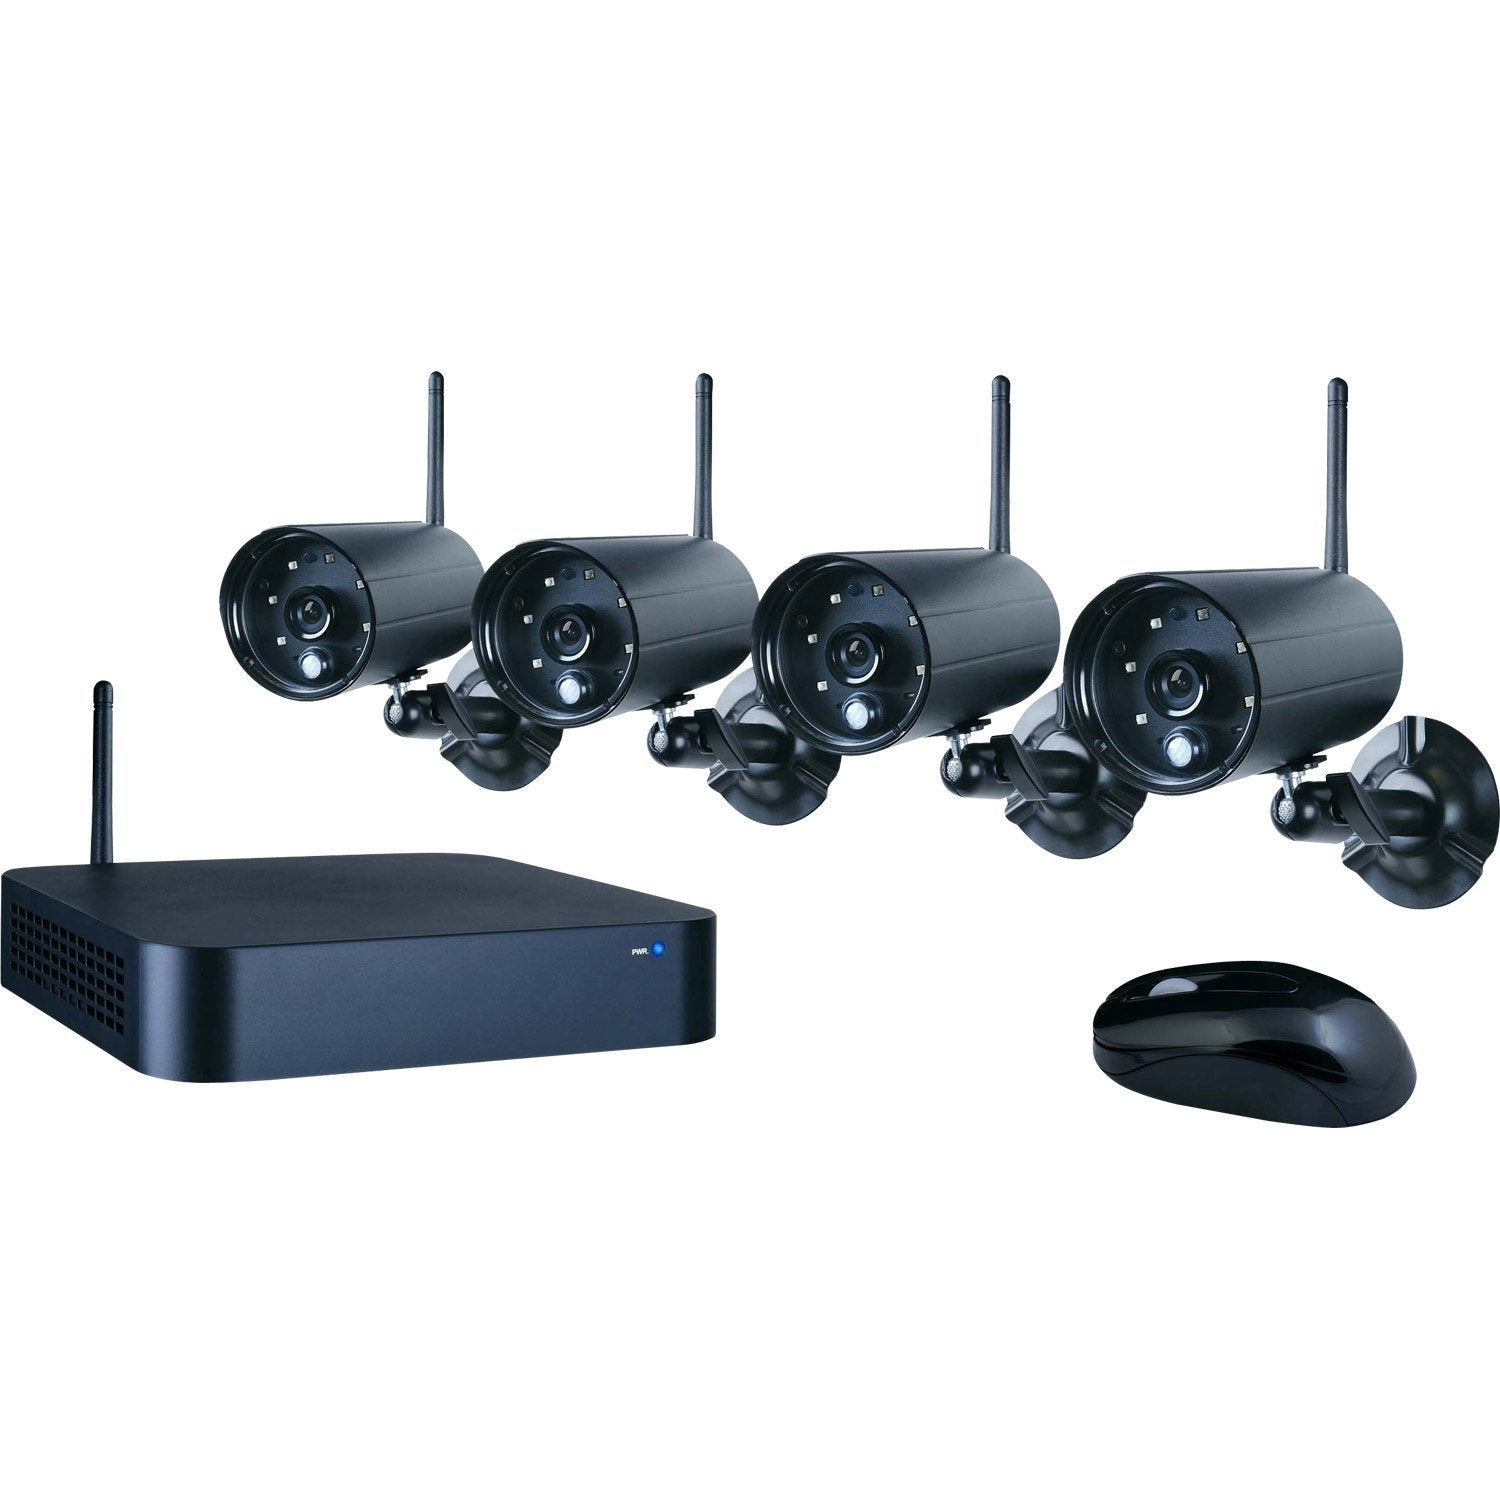 kit de vid osurveillance sans fil enregistreur 4 cam ras. Black Bedroom Furniture Sets. Home Design Ideas